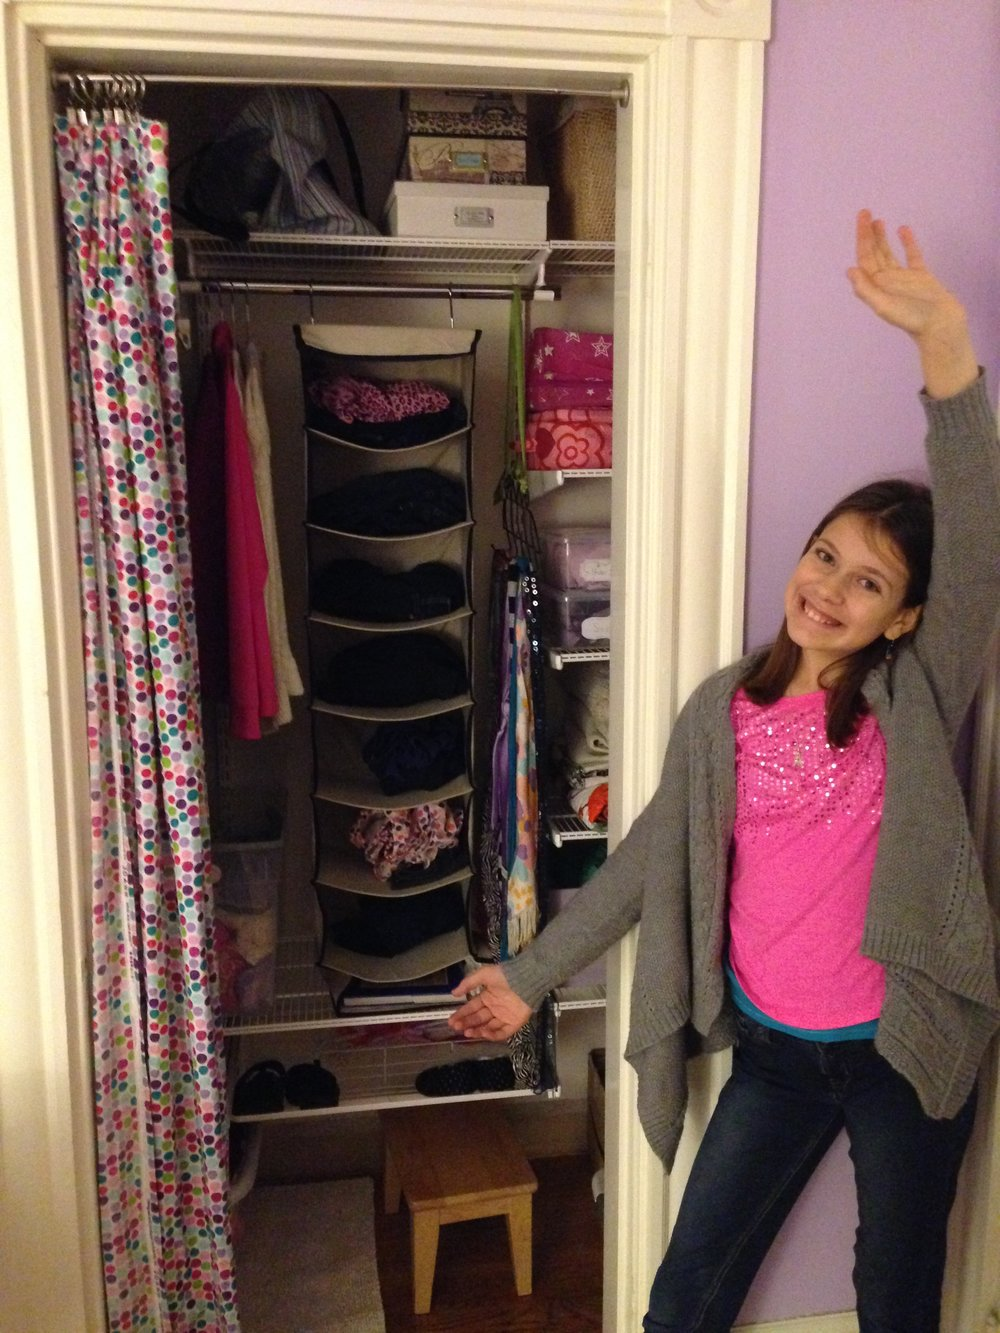 My girl and her updated closet from several years ago (Preteen )